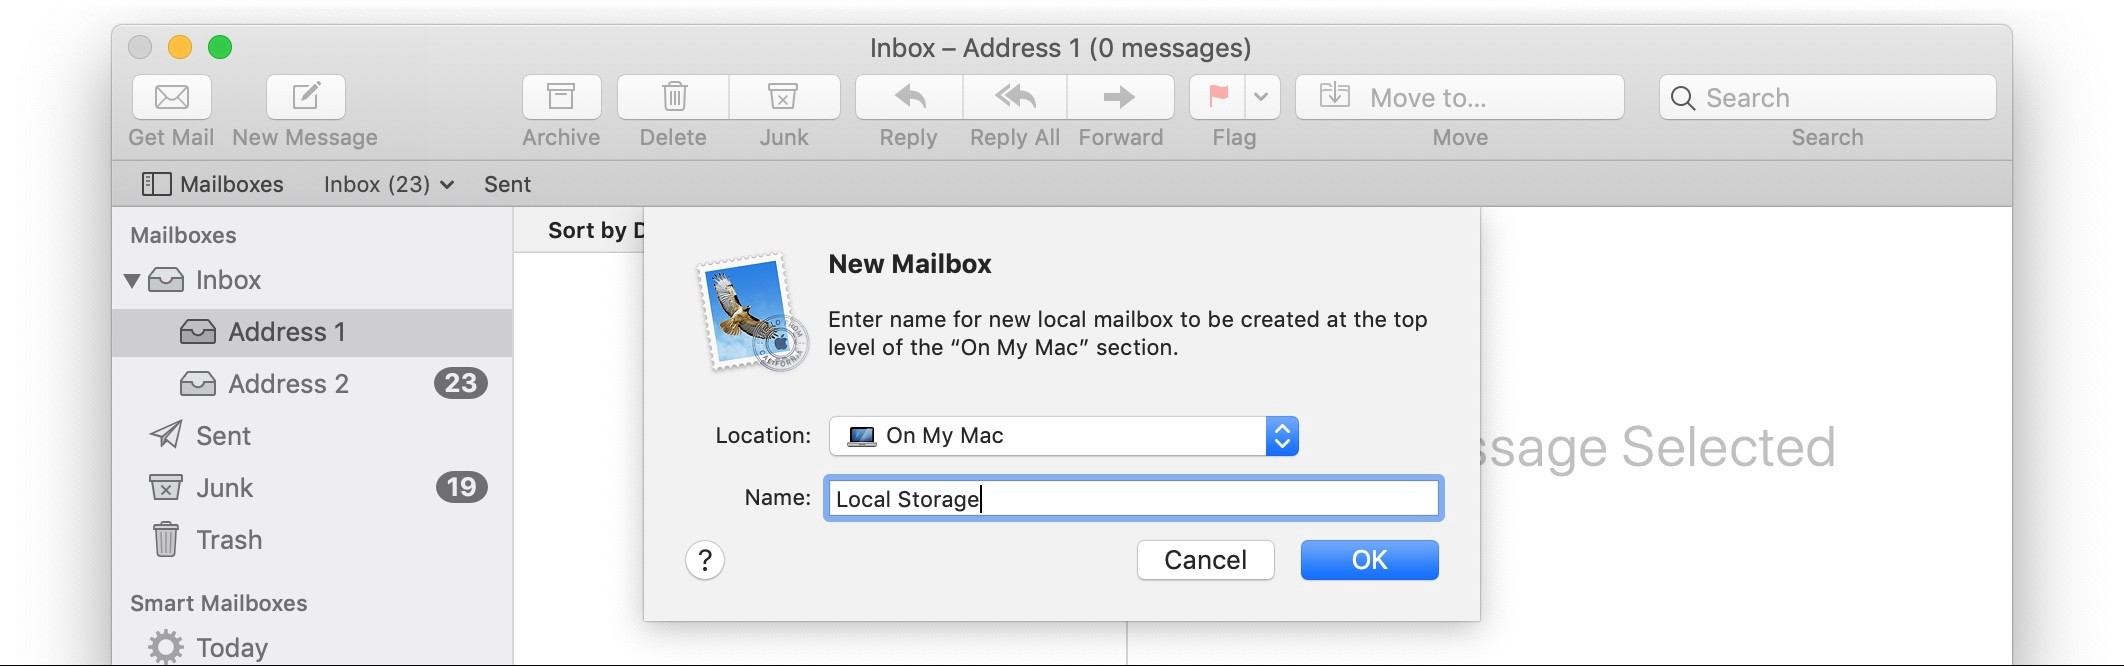 How to Manage E-Mail - Boris Müller - Medium